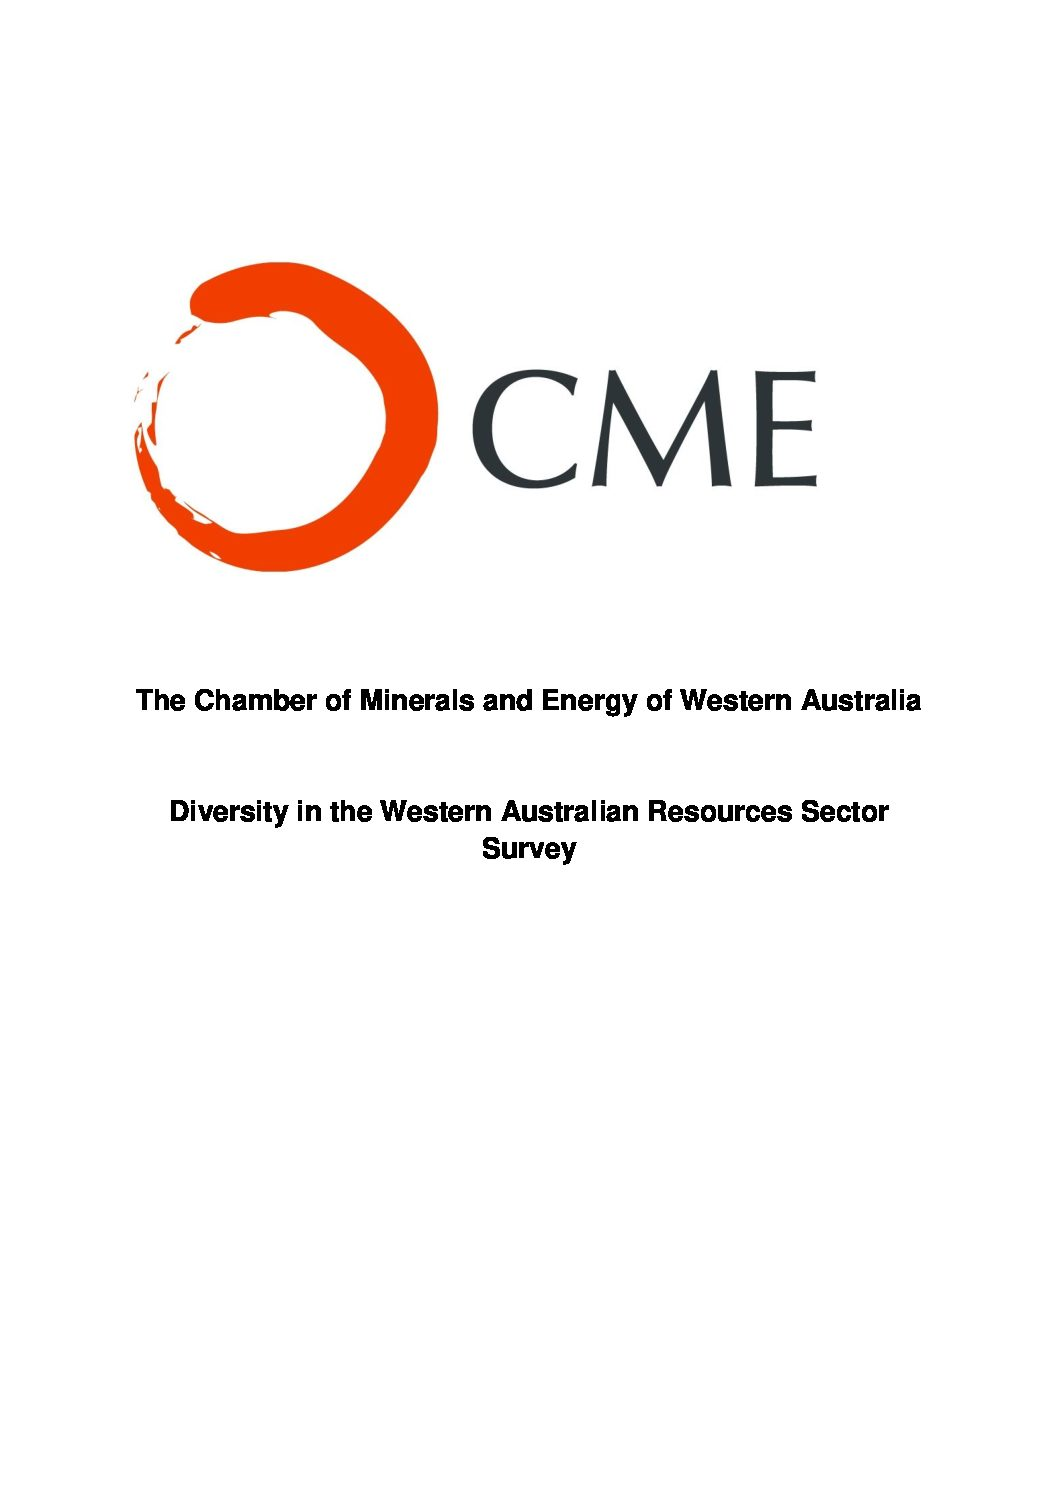 Diversity in the Western Australian Resources Sector Survey Report 2011